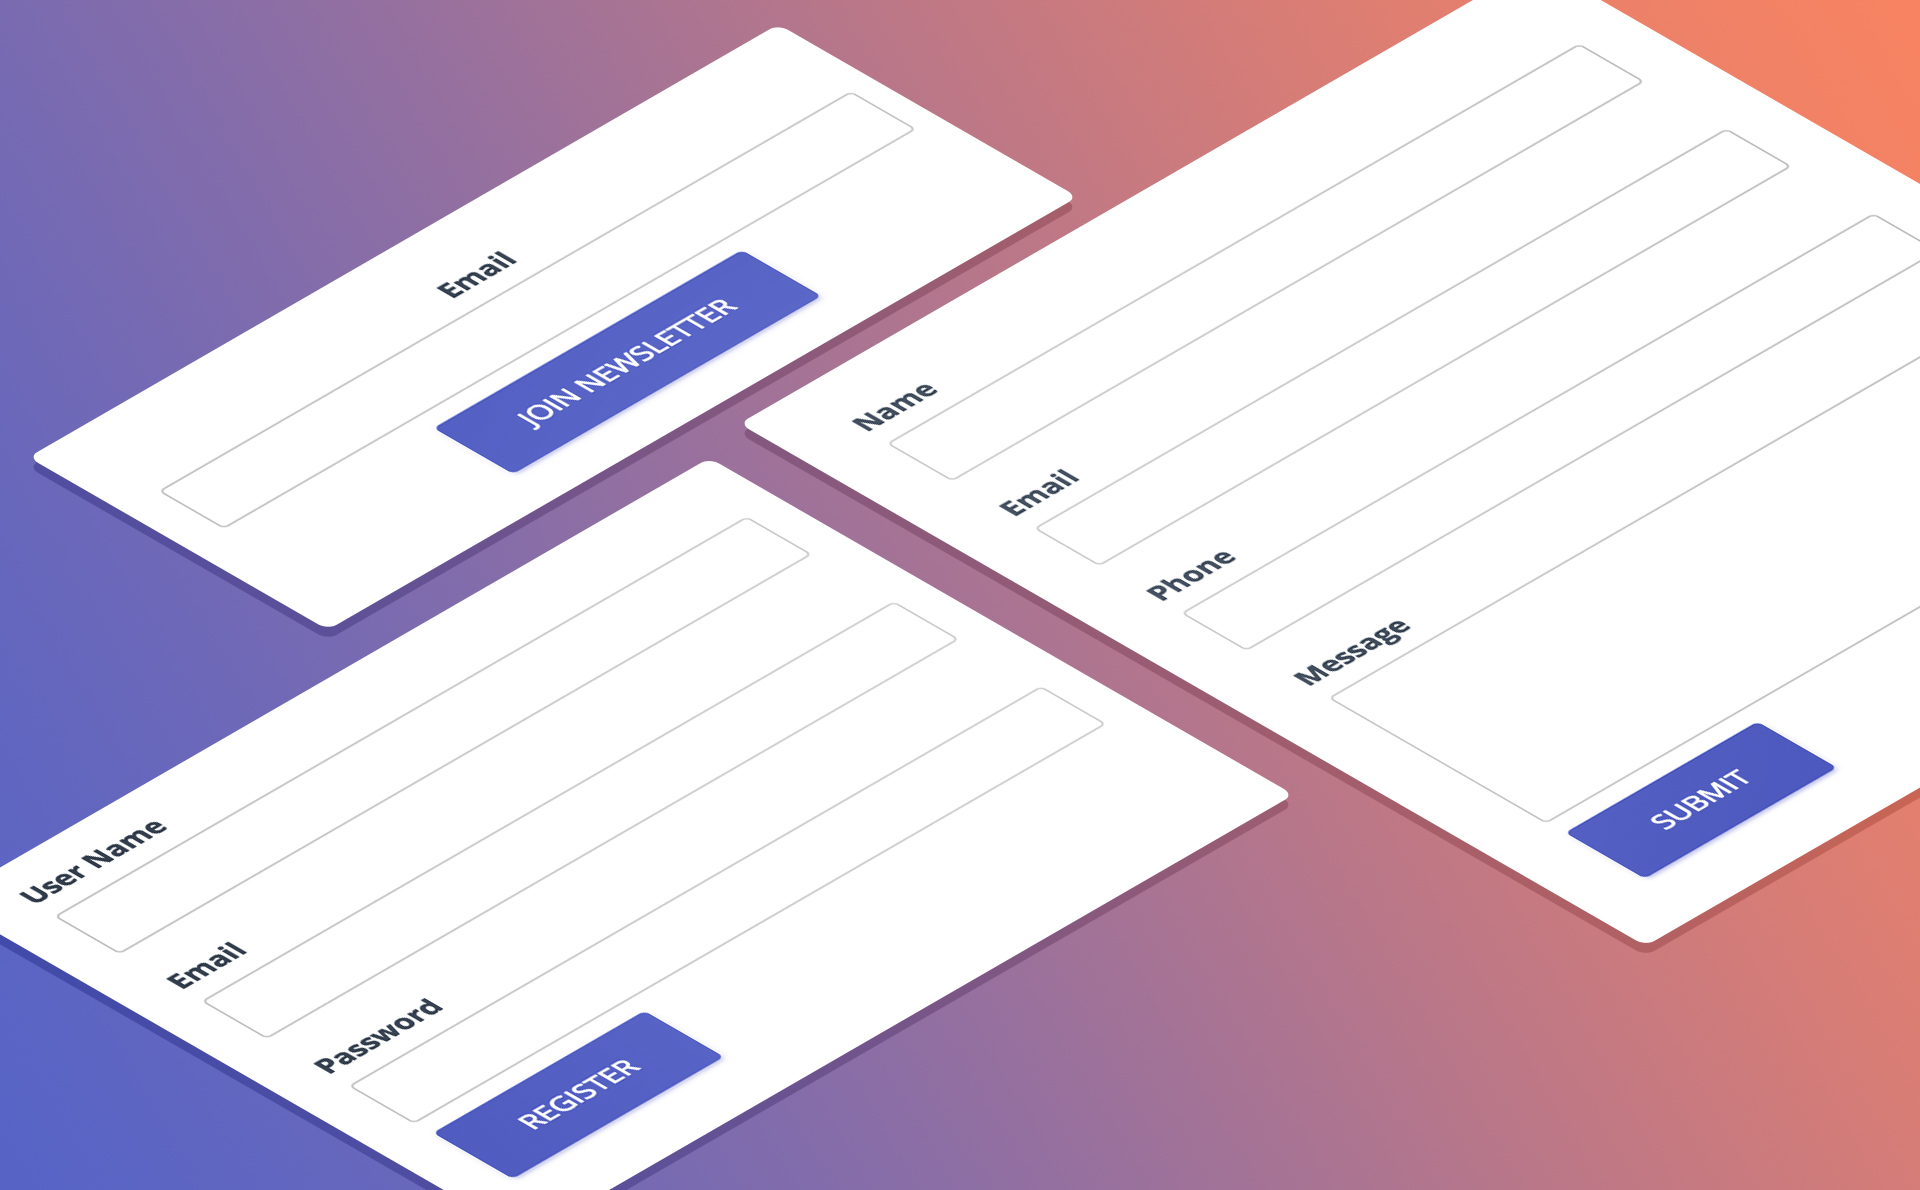 demo_content_forms